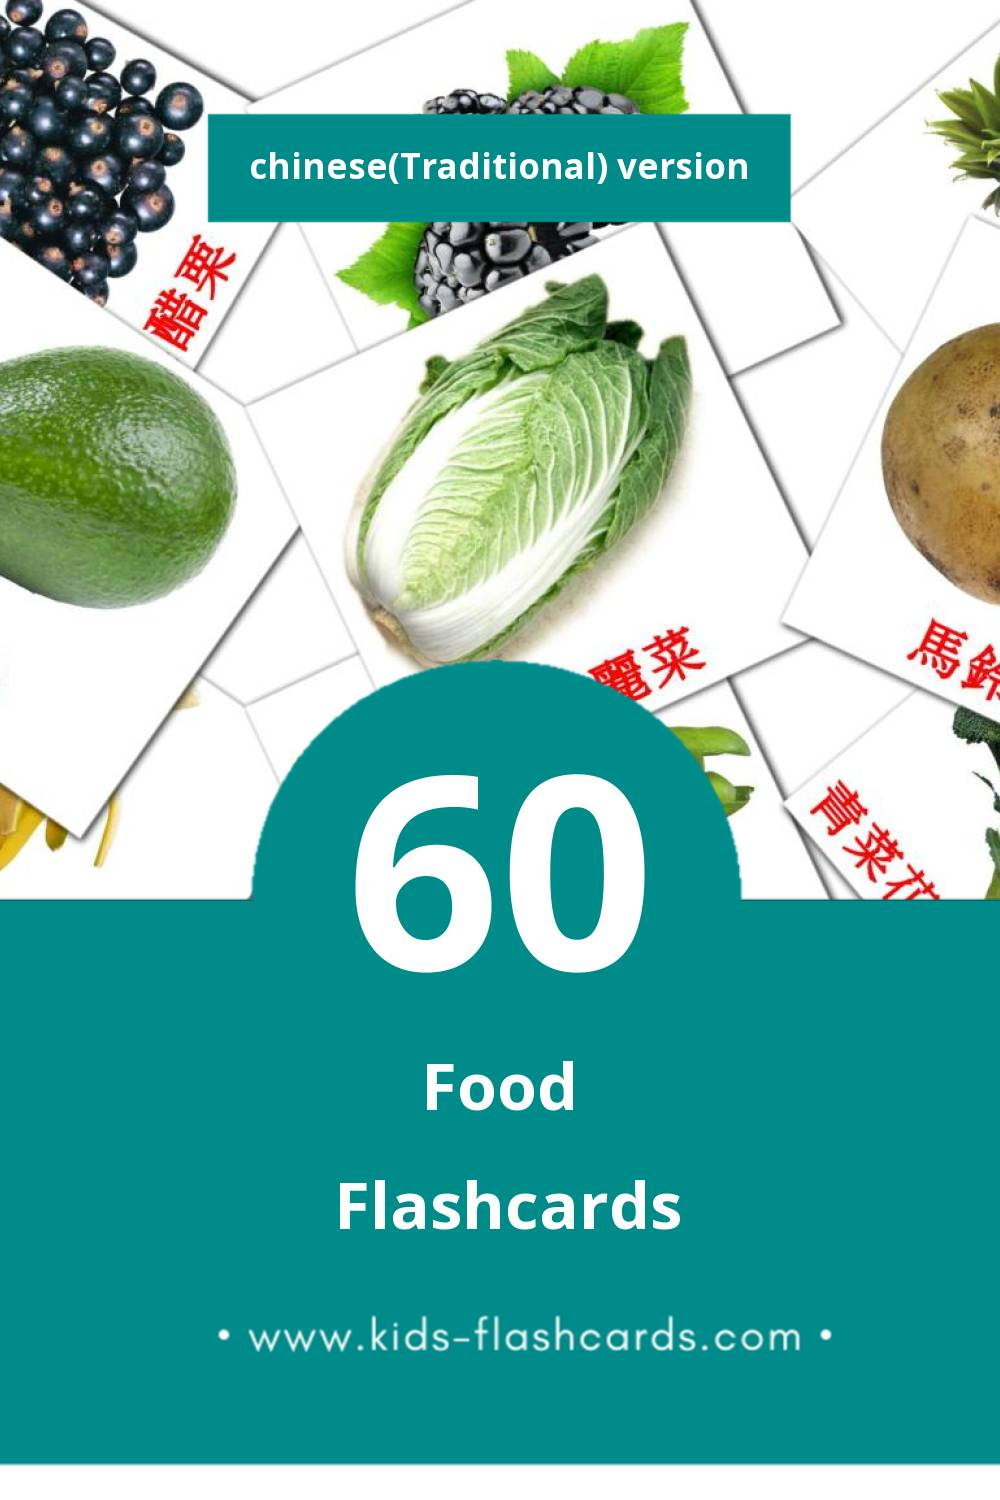 Visual 食物 Flashcards for Toddlers (60 cards in Chinese(Traditional))